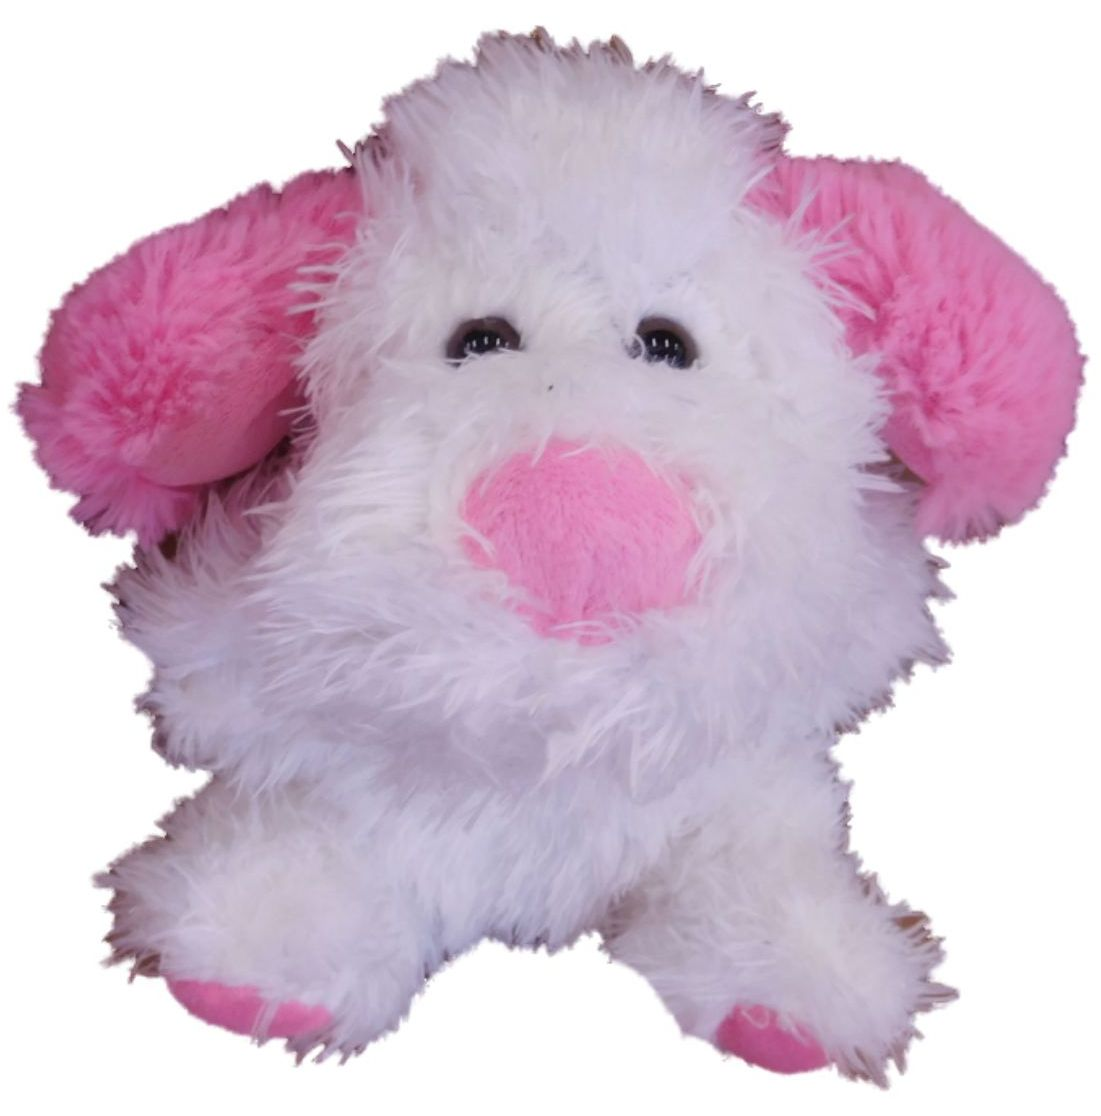 Celebrate Plush Puppy Dog Stuffed Animal 6 Whte With Pink Ears Pup